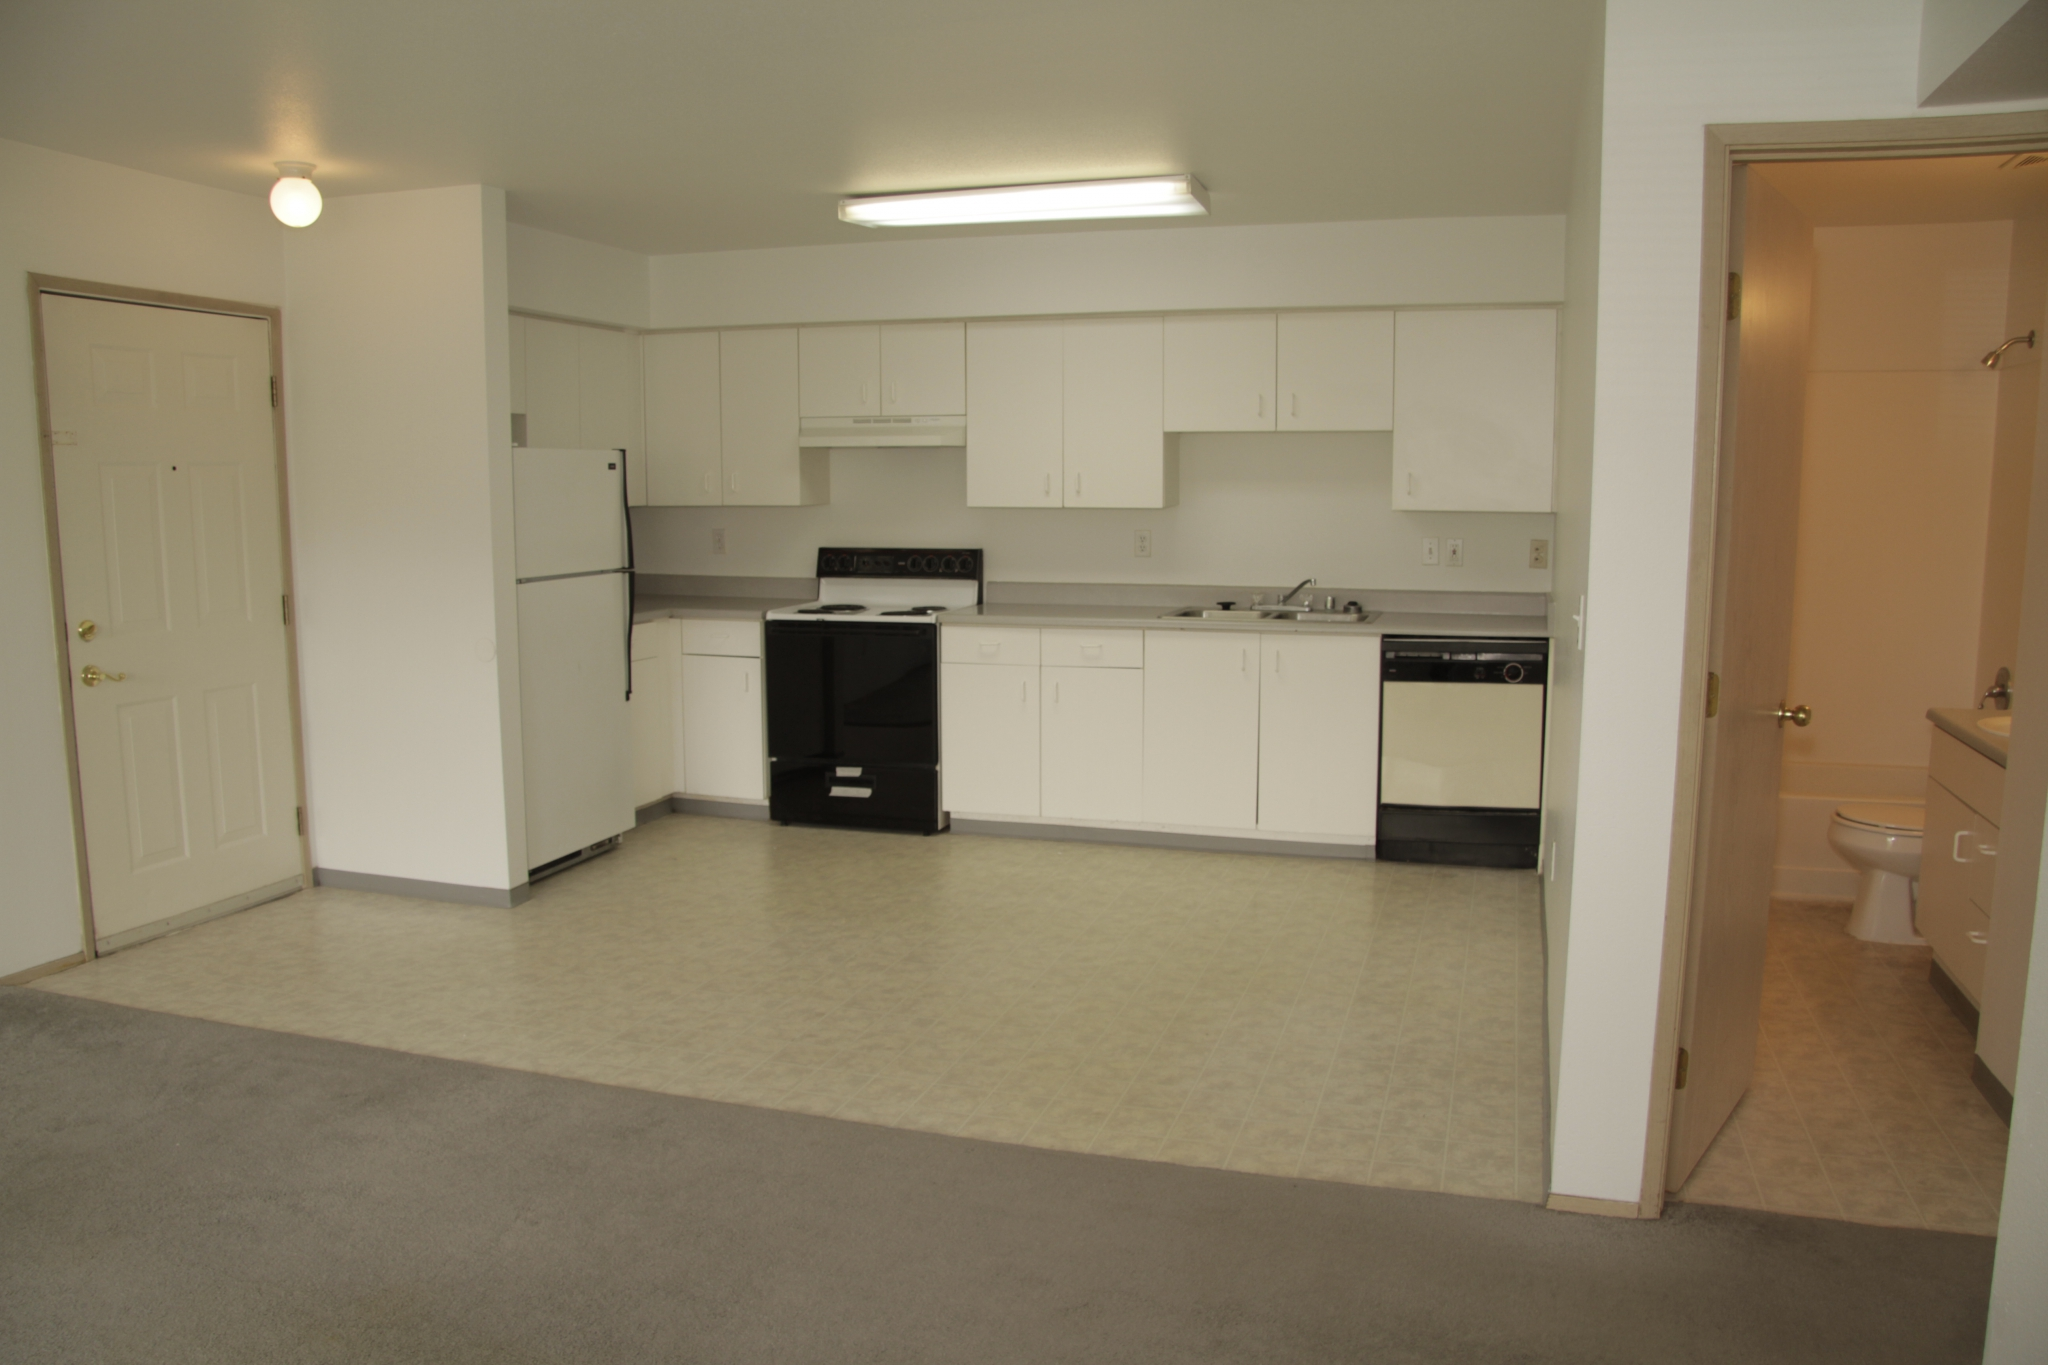 Image of Spacious and Efficient Refrigerators for Clarkston Gardens Apartments